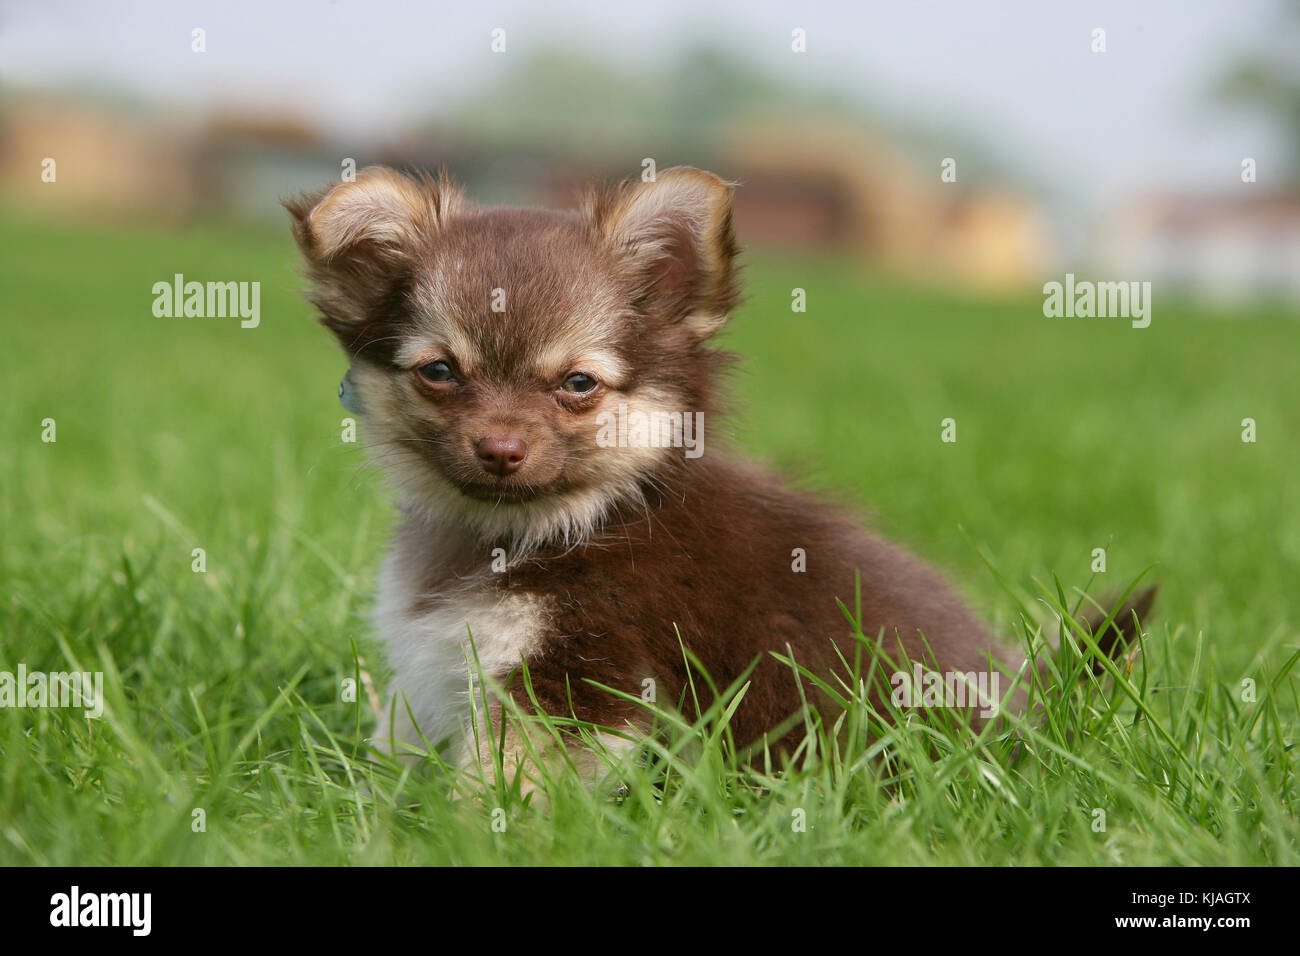 Long Haired Chihuahua Puppy Stock Photo 166189882 Alamy